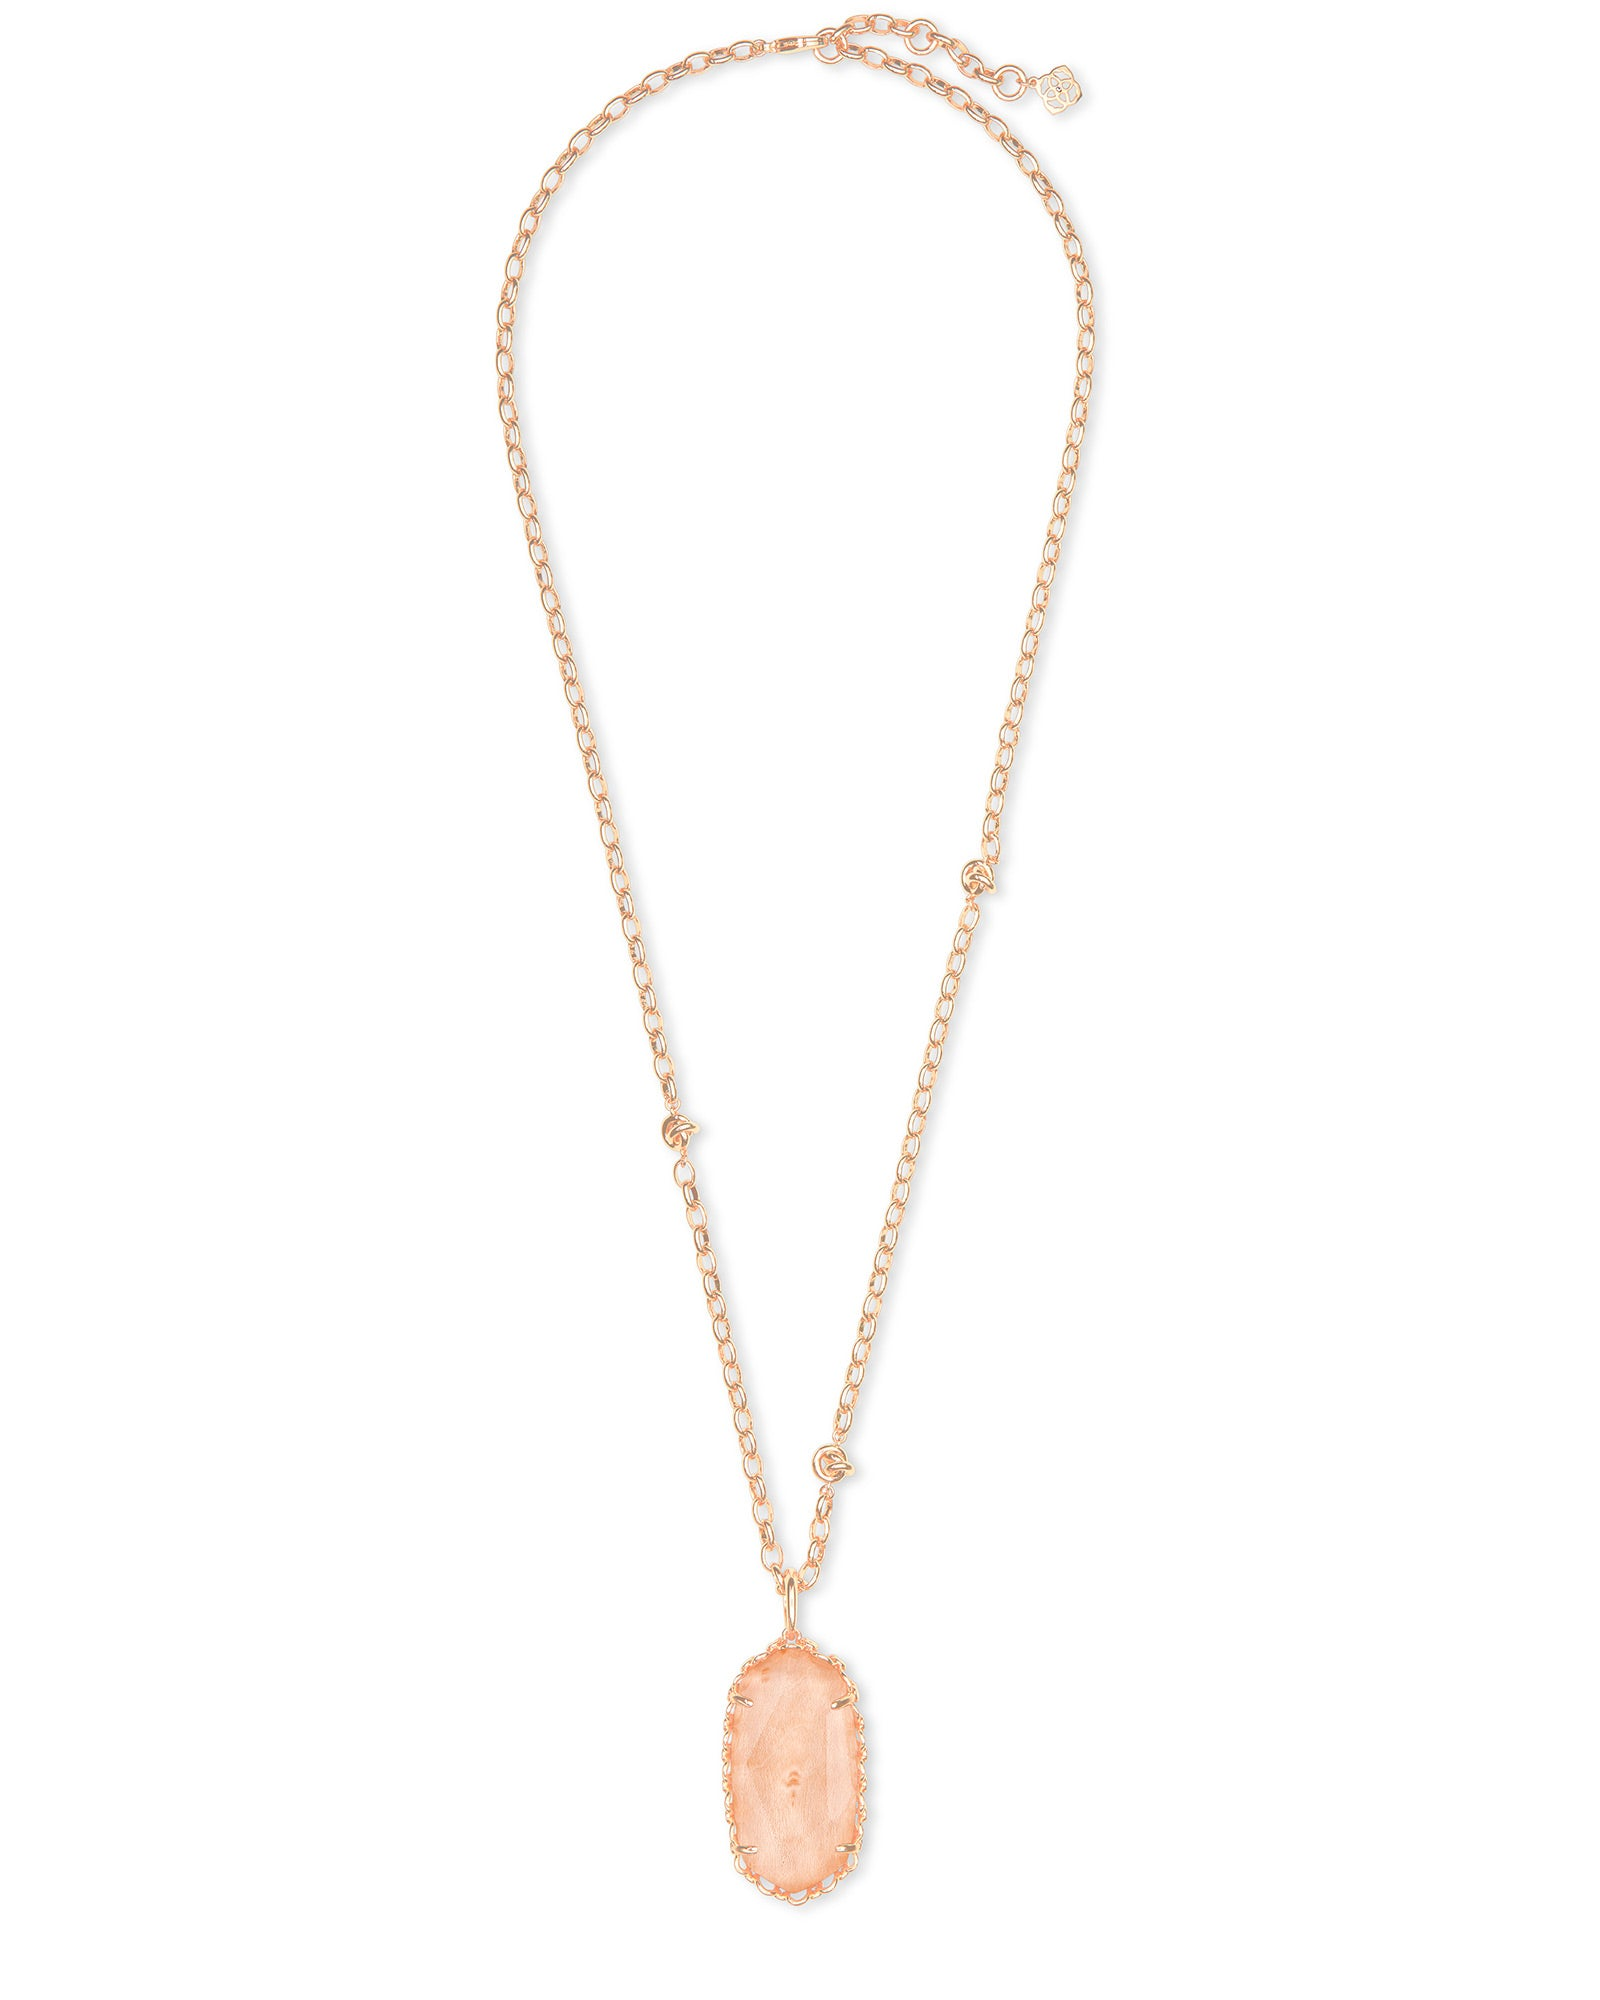 Macrame Reid Rose Gold Necklace in Blush Wood